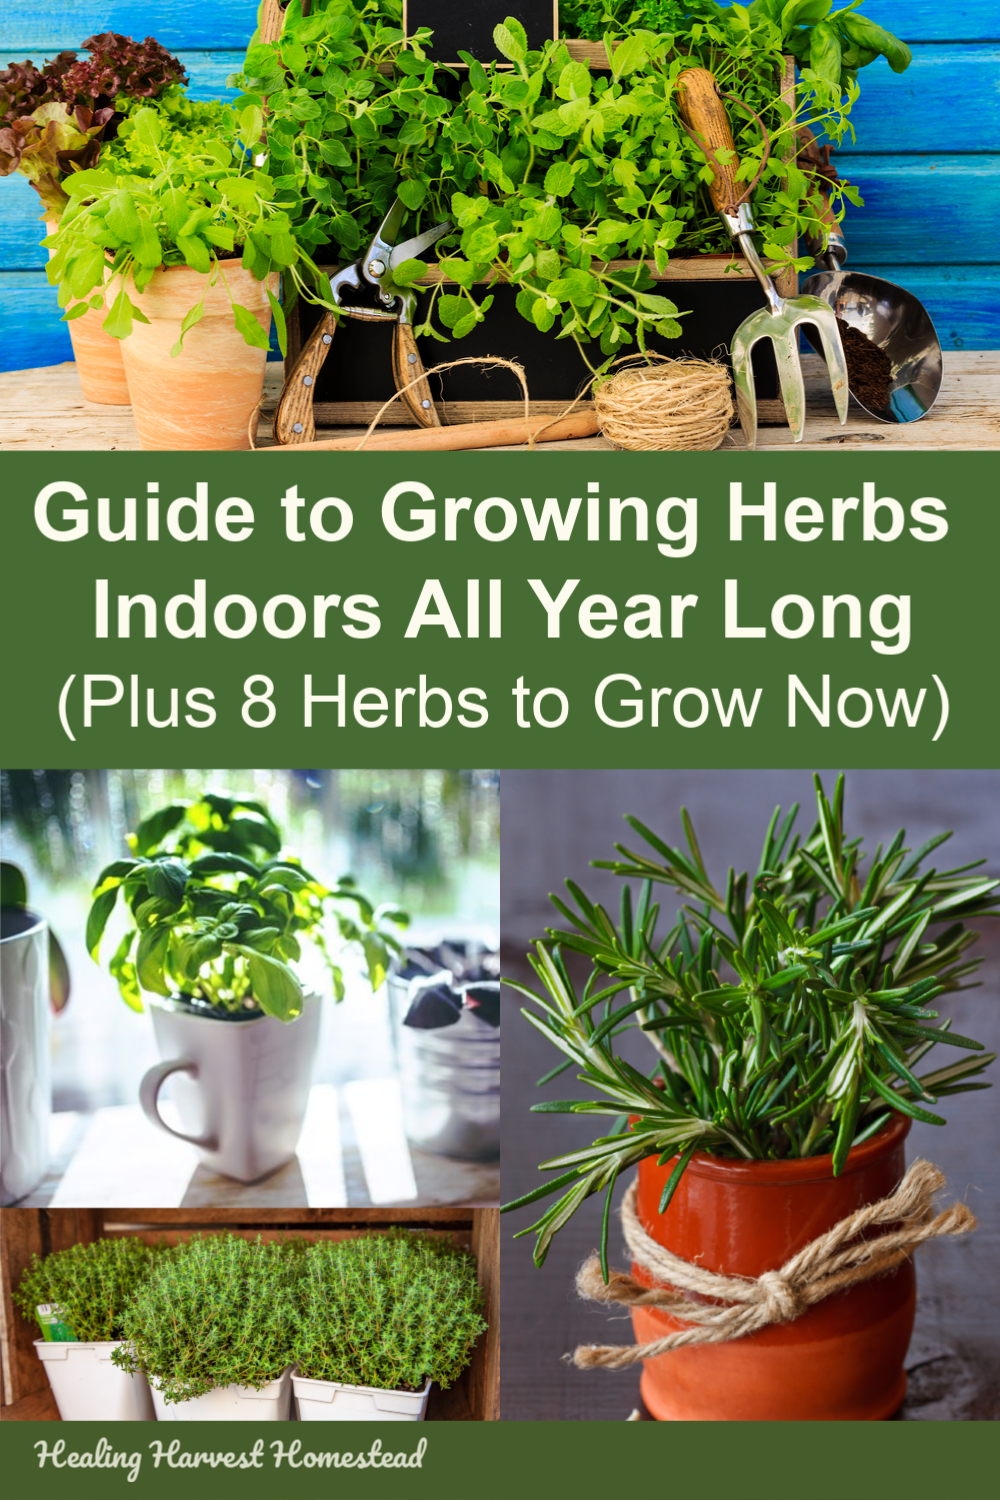 Find out how you can grow herbs indoors all year long! Have you ever wanted to snip fresh herbs for your cooking in the middle of the winter? Here is a guide and tips for indoor herb gardening, along with the BEST 8 herbs to grow inside your home. #growherbs #howto #garden #indoors #tipsforgrowing #healingharvesthomestead #indoor #gardening